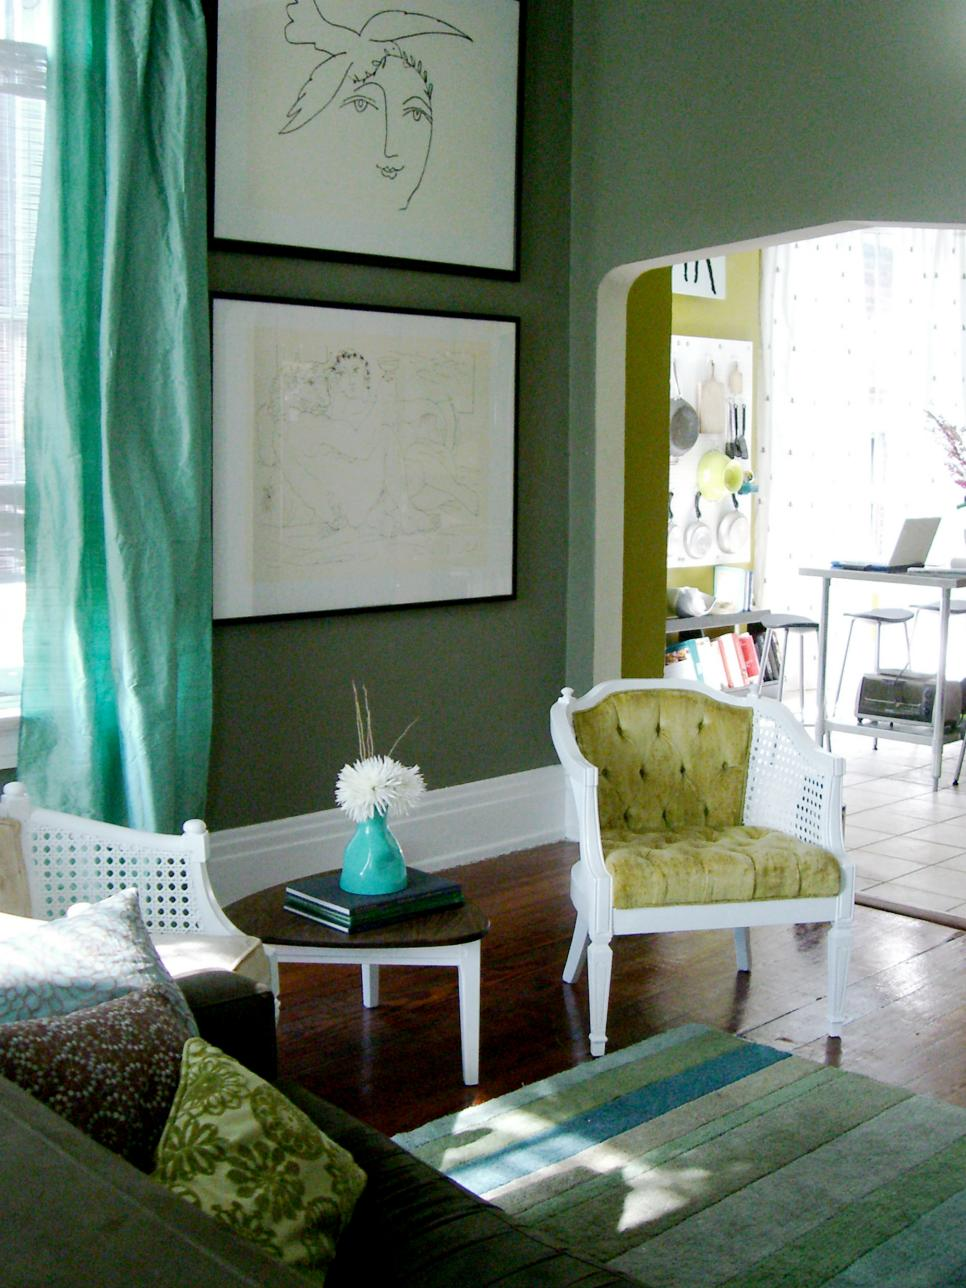 Living room color schemes green - Living Room Color Schemes Green 0